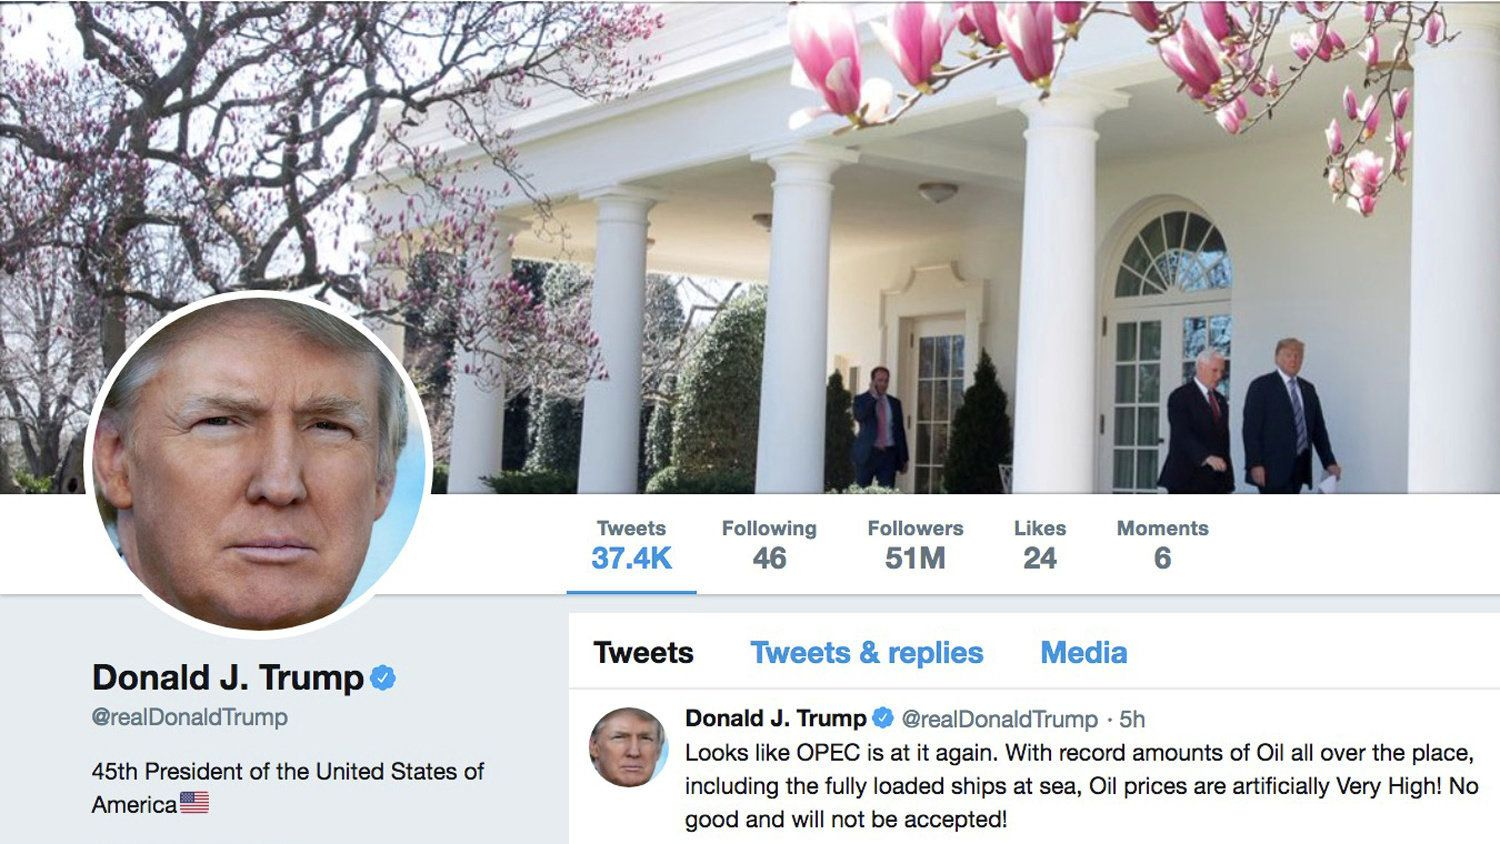 The masthead of U.S. President Donald Trump's @realDonaldTrump Twitter account with a message about OPEC policy is seen on April 20, 2018.  @realDonaldTrump/Handout via REUTERS    ATTENTION EDITORS - THIS IMAGE WAS PROVIDED BY A THIRD PARTY